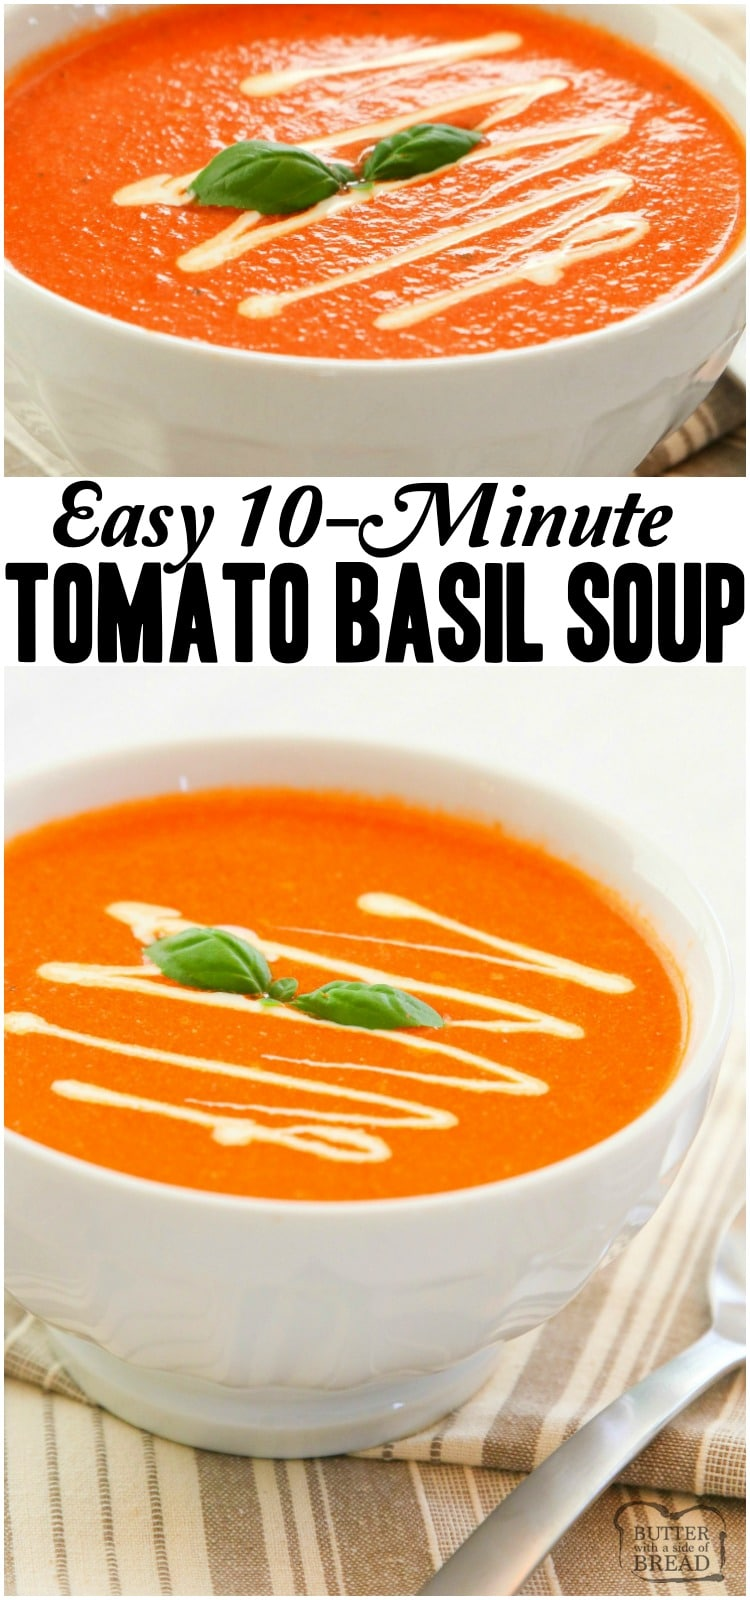 Easy 10-Minute Tomato Basil Soup recipe made with San Marzano style tomatoes, broth, fresh basil & butter. Smooth & tangy tomato soup that comes together fast. Perfect for a quick weeknight meal or lunch.